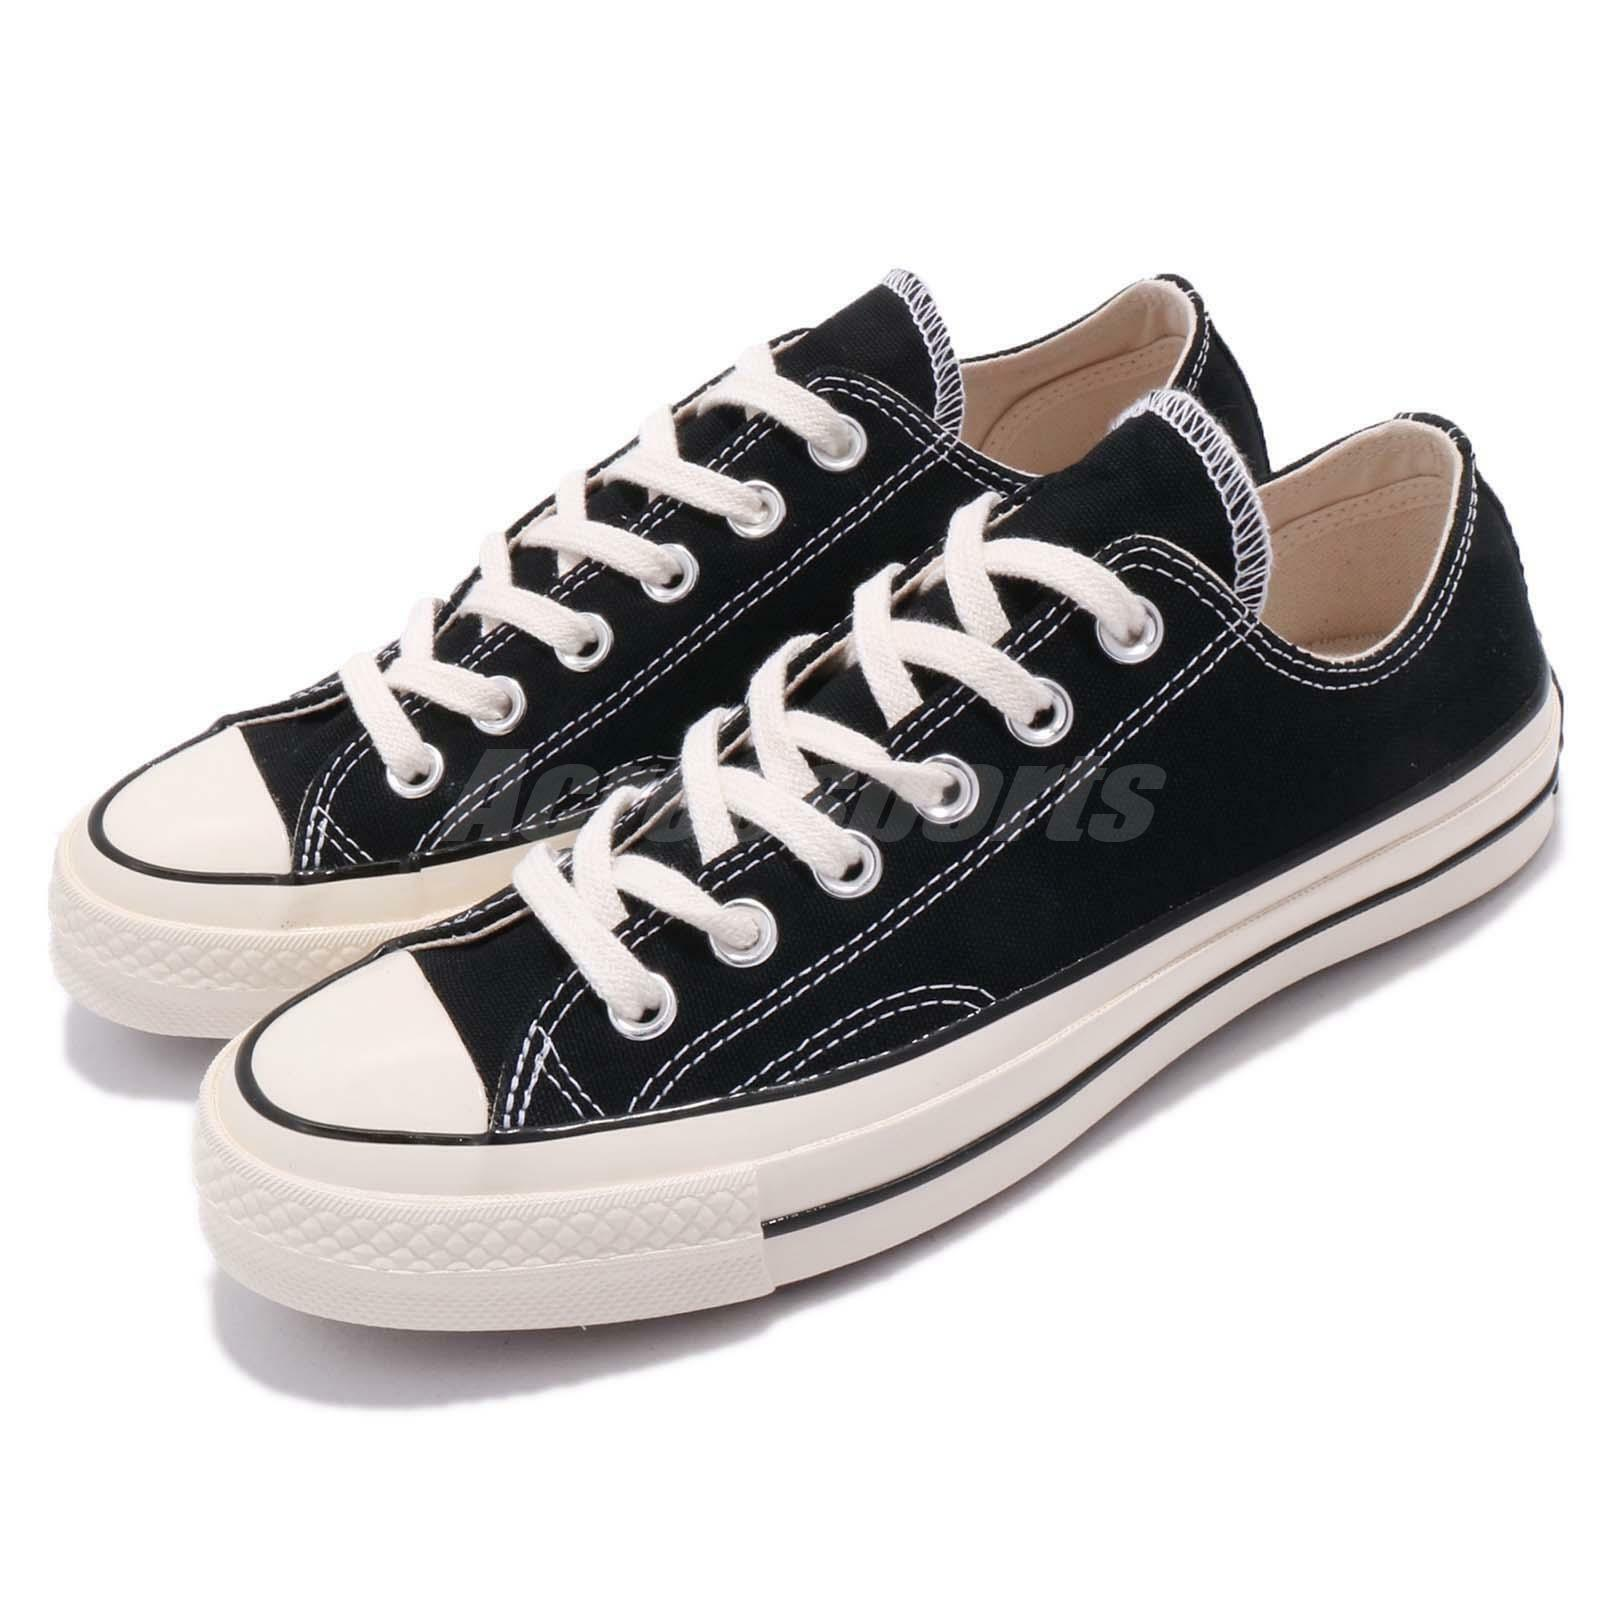 Converse Converse Converse First String Chuck Taylor All Star 70 1970 Low Black   WoHommes  162058C 524d8e